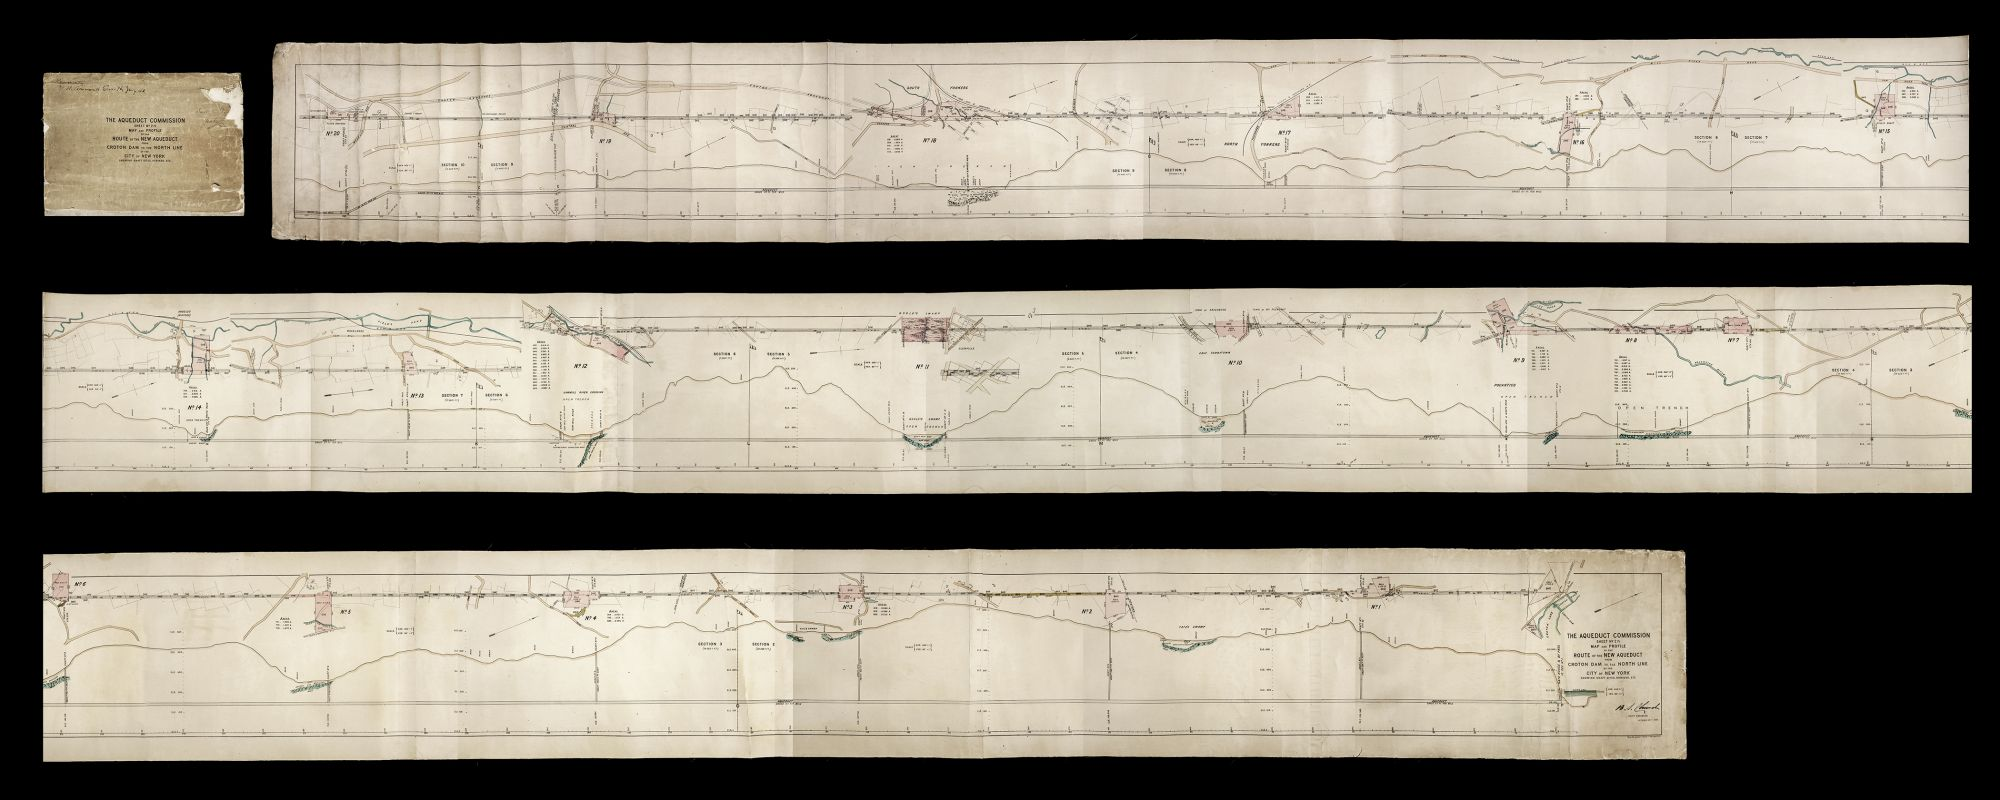 Map Of 287 New York.The Aqueduct Commission Sheet No 2 Map And Profile Of The Route Of The New Aqueduct From Croton Dam To The North Line Of The City Of New York